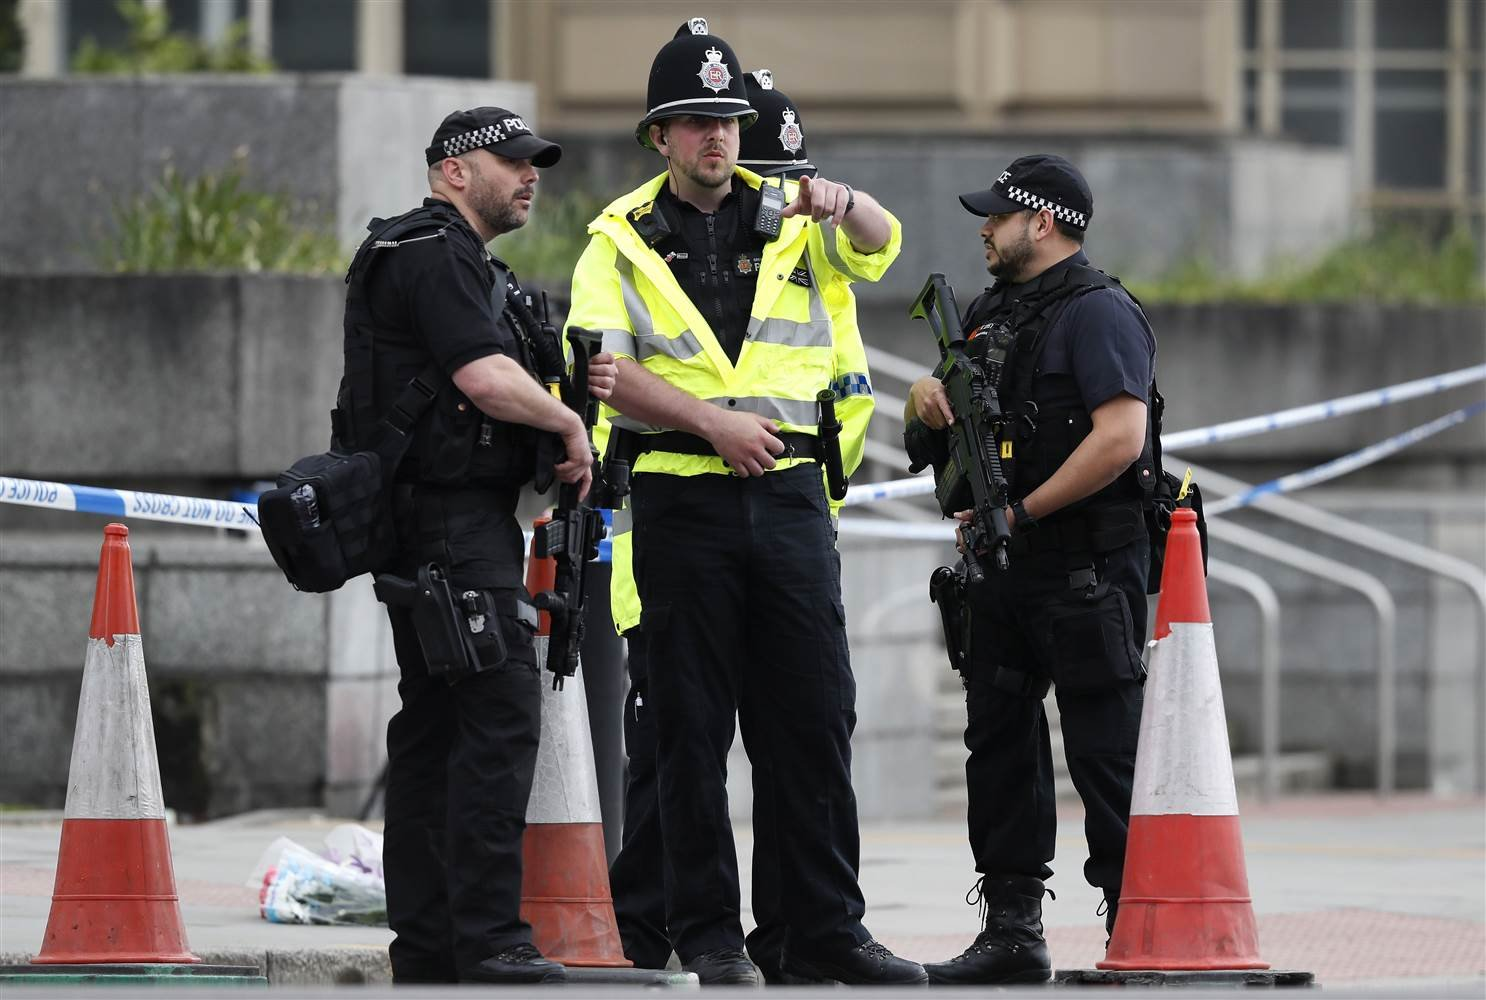 Armed police officers patrol a police cordon near the Manchester Arena in Manchester on May 24. Kirsty Wigglesworth / AP